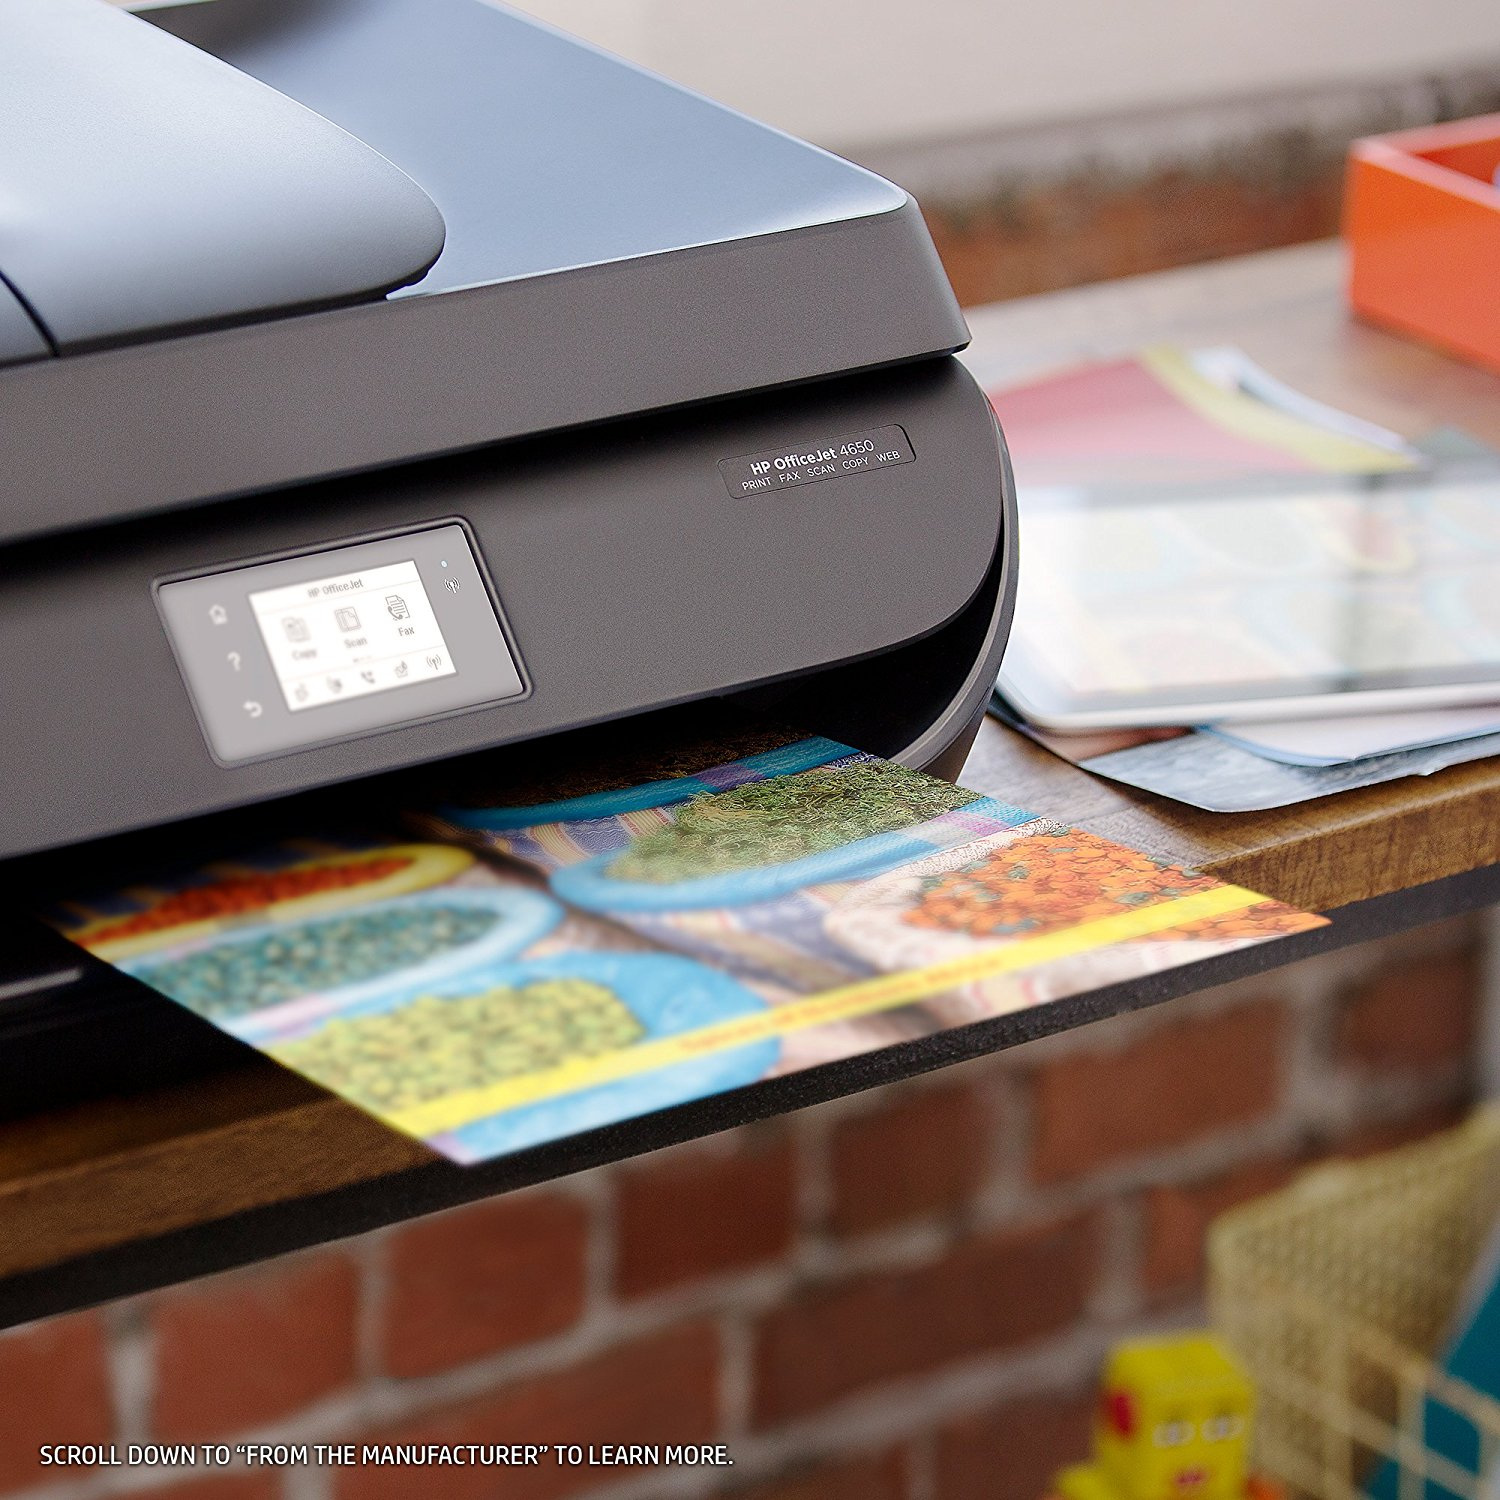 HP OfficeJet 4650 Wireless All-in-One Photo Printer Best